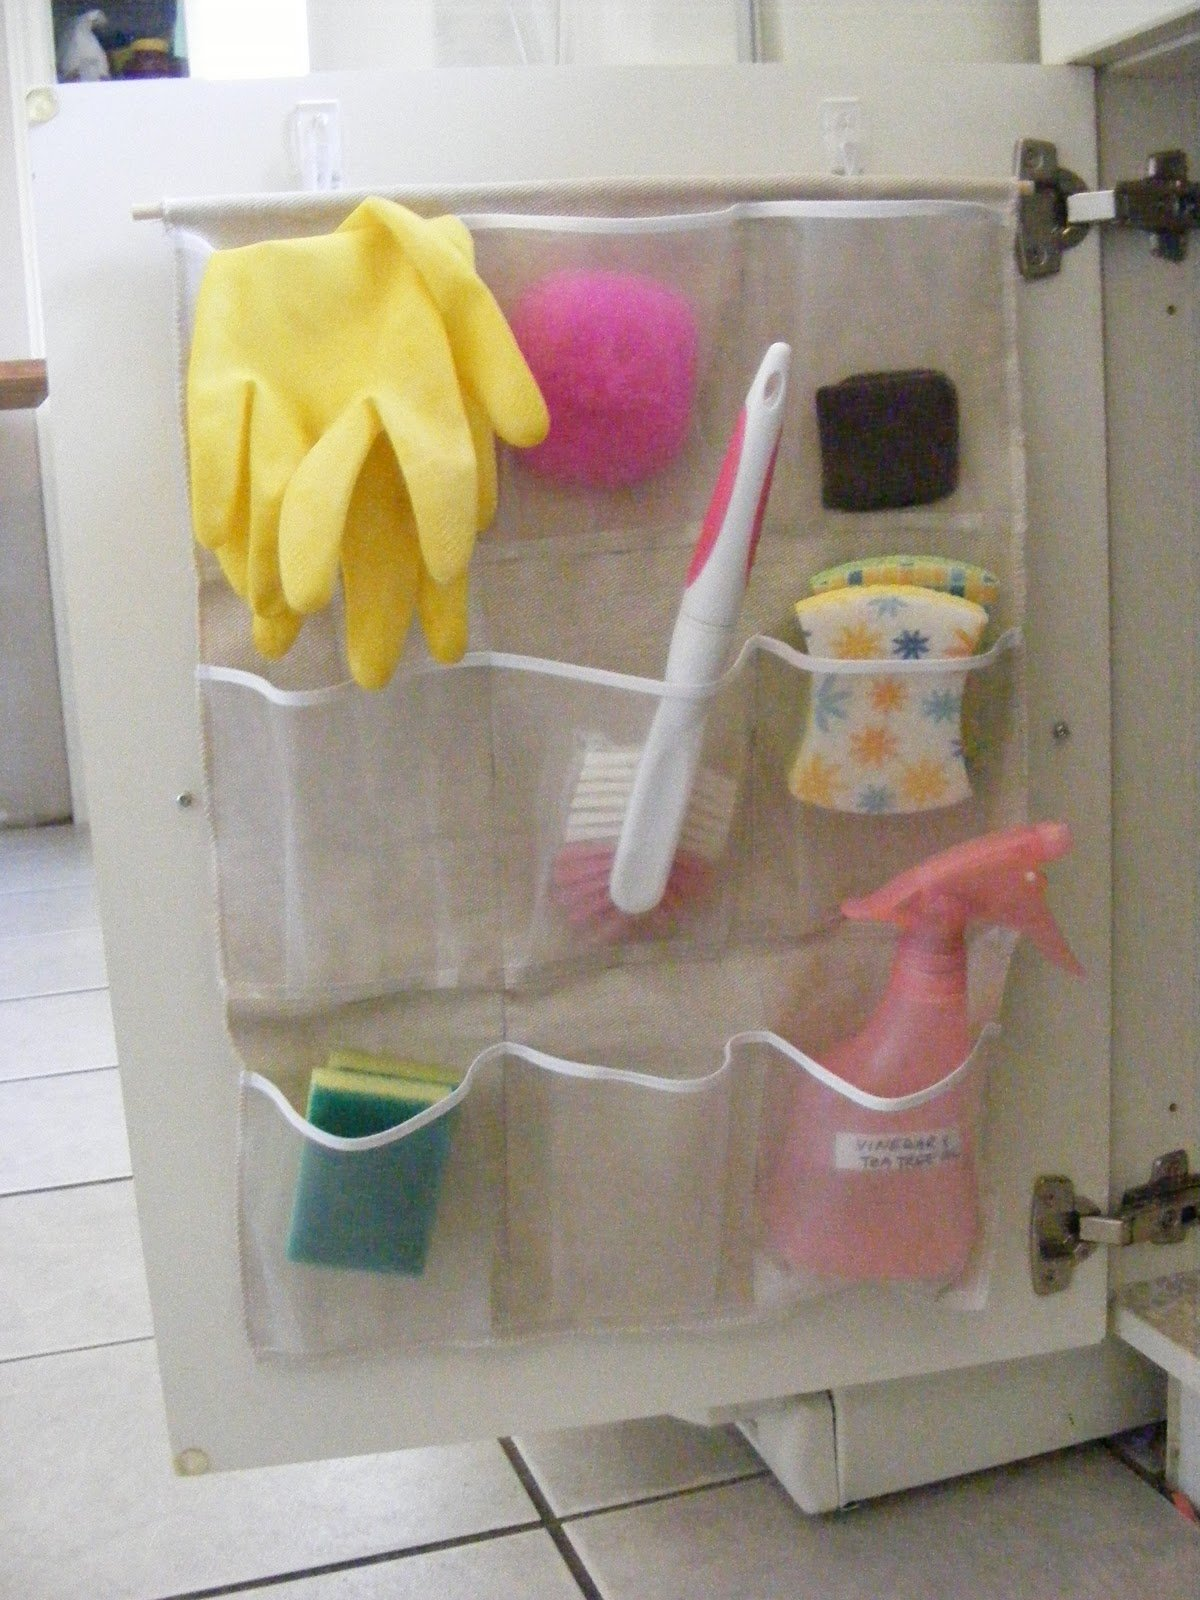 life-storage-kids-bathroom-organization-4